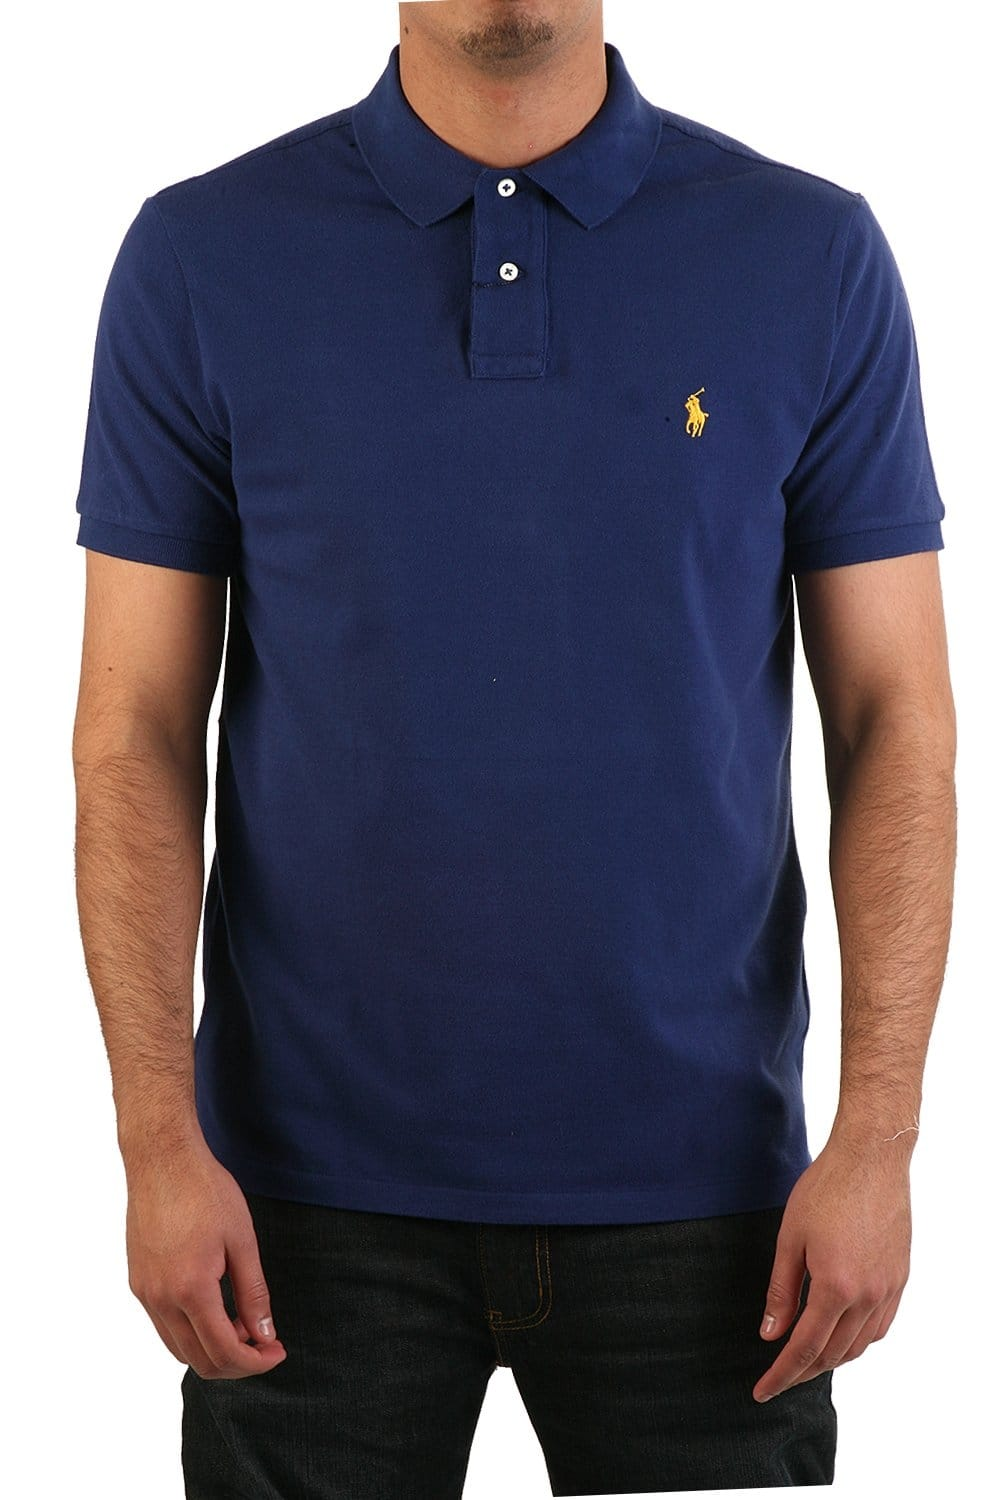 polo ralph lauren polo t shirt in royal blue a12ks13mc0004. Black Bedroom Furniture Sets. Home Design Ideas